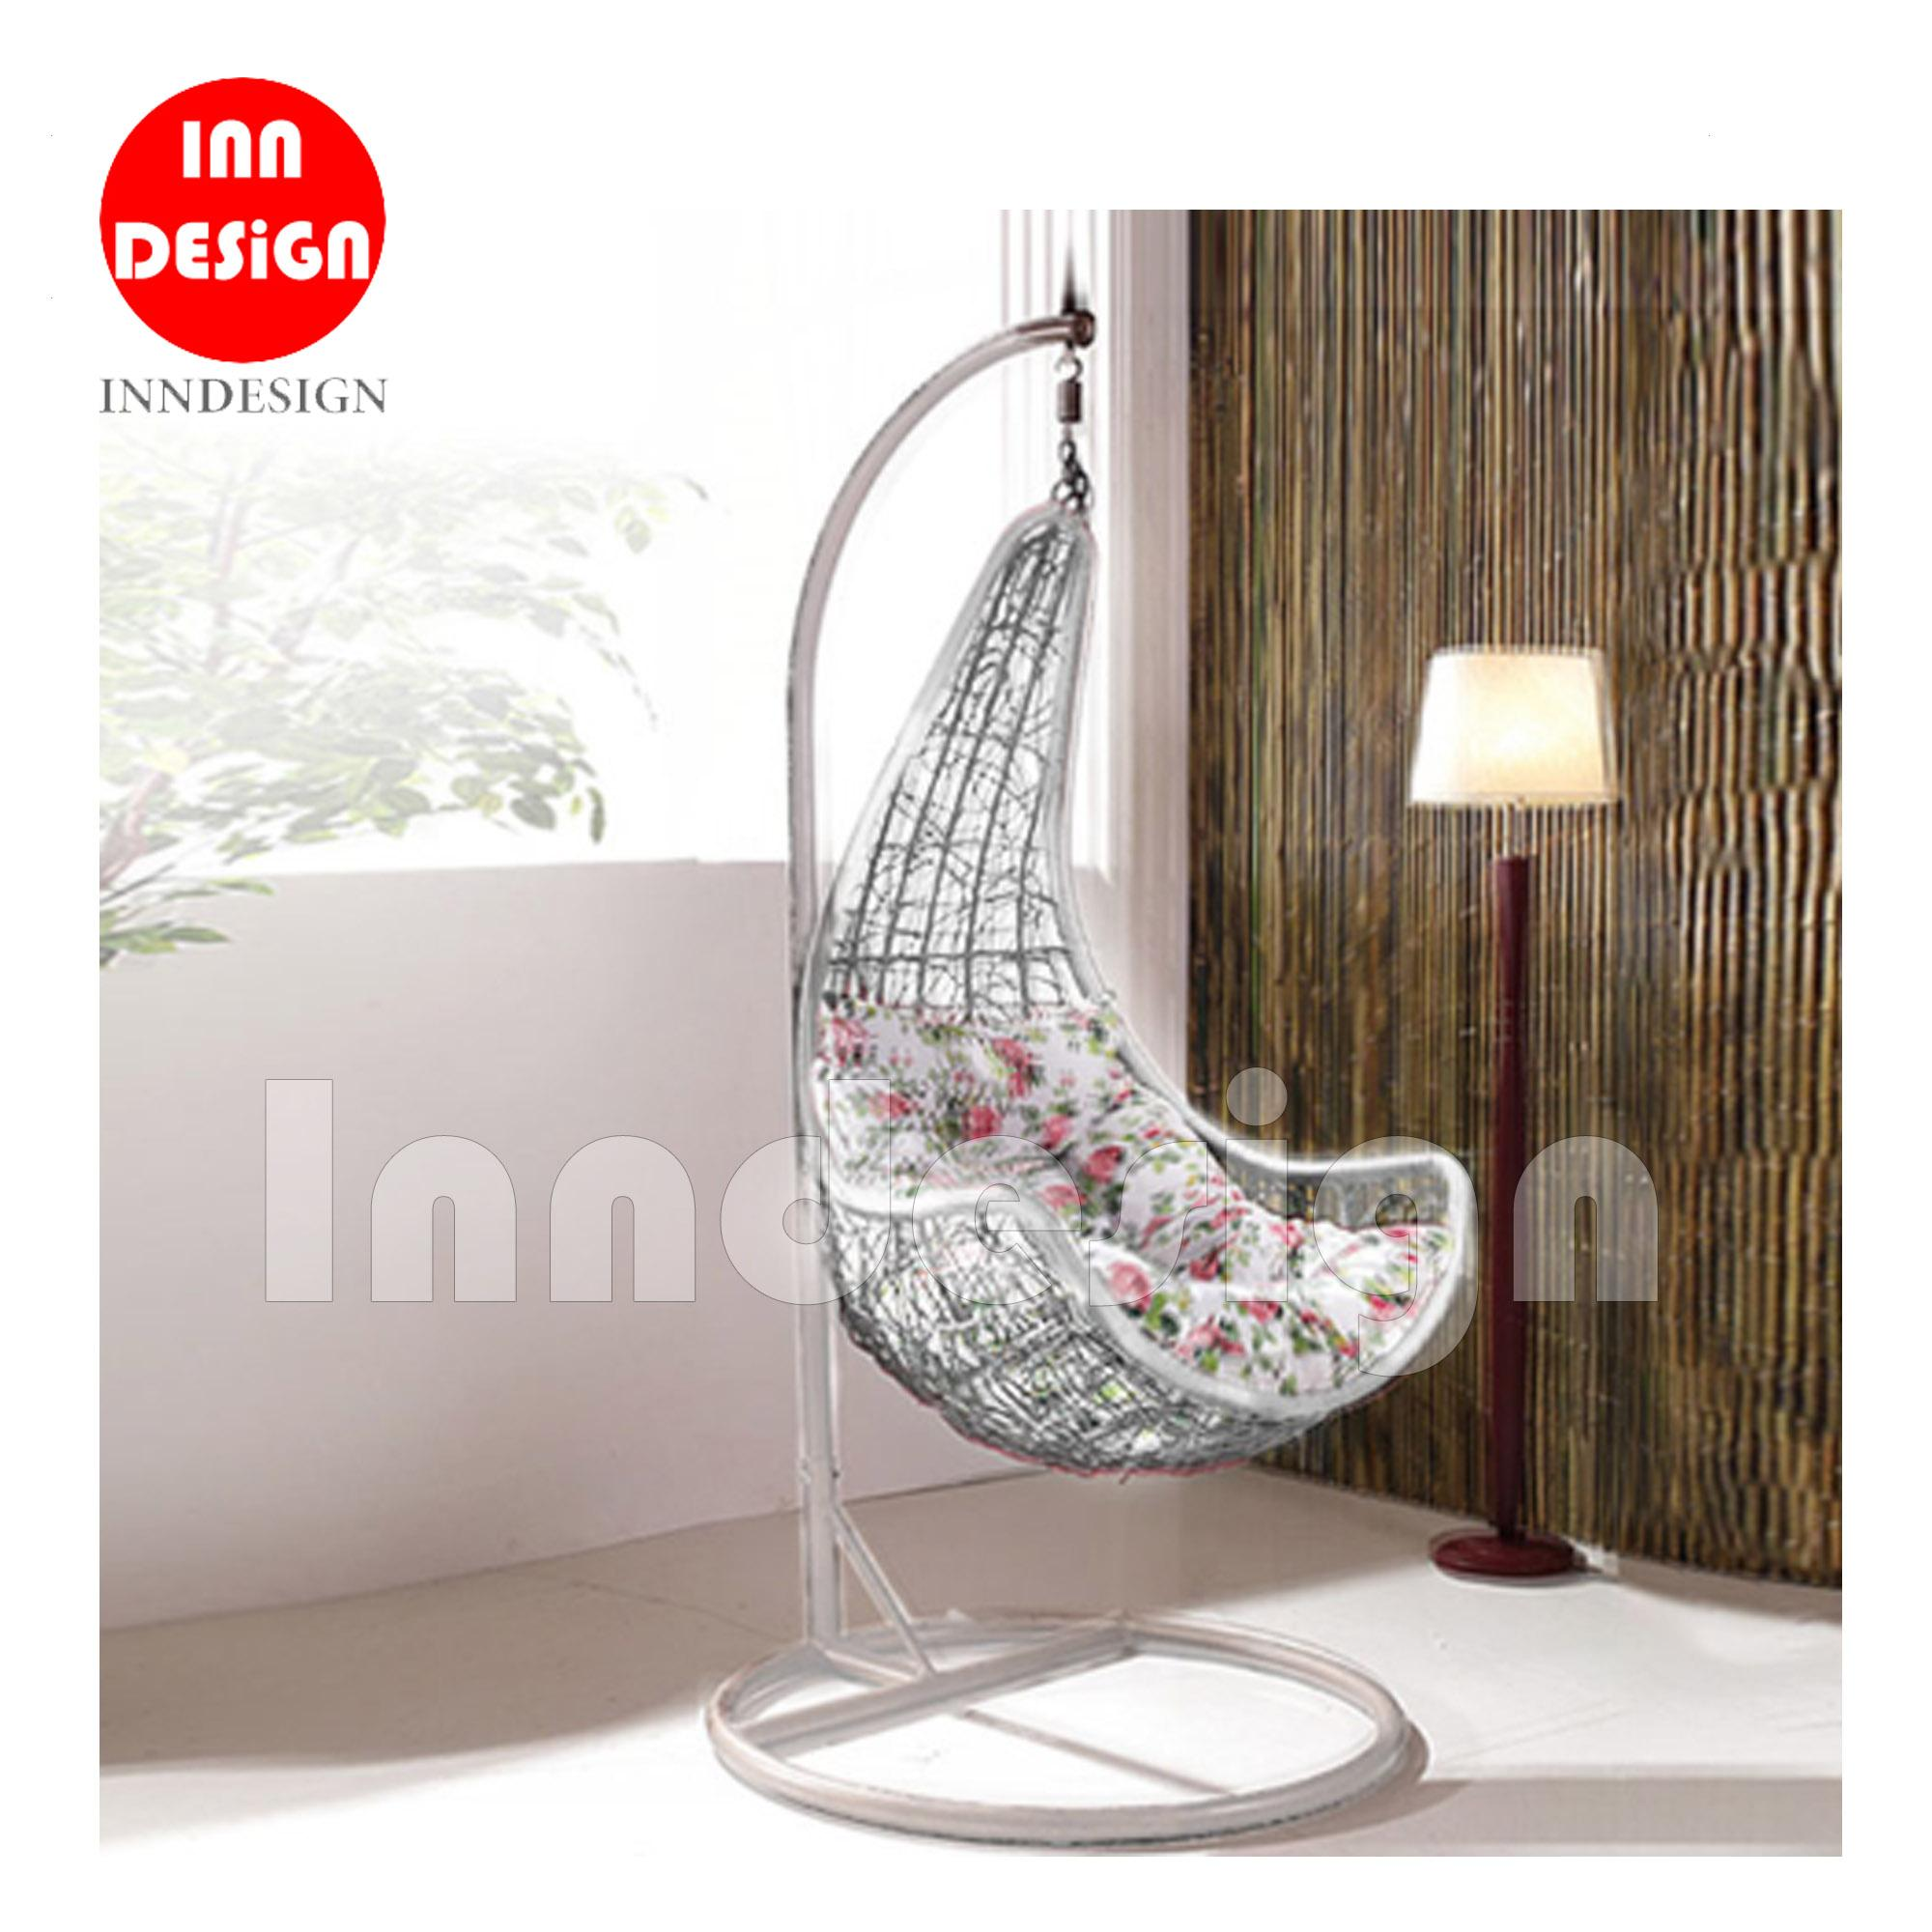 Miki Swing Chair / Lounge Chair / Relax Chair (White + Flower)